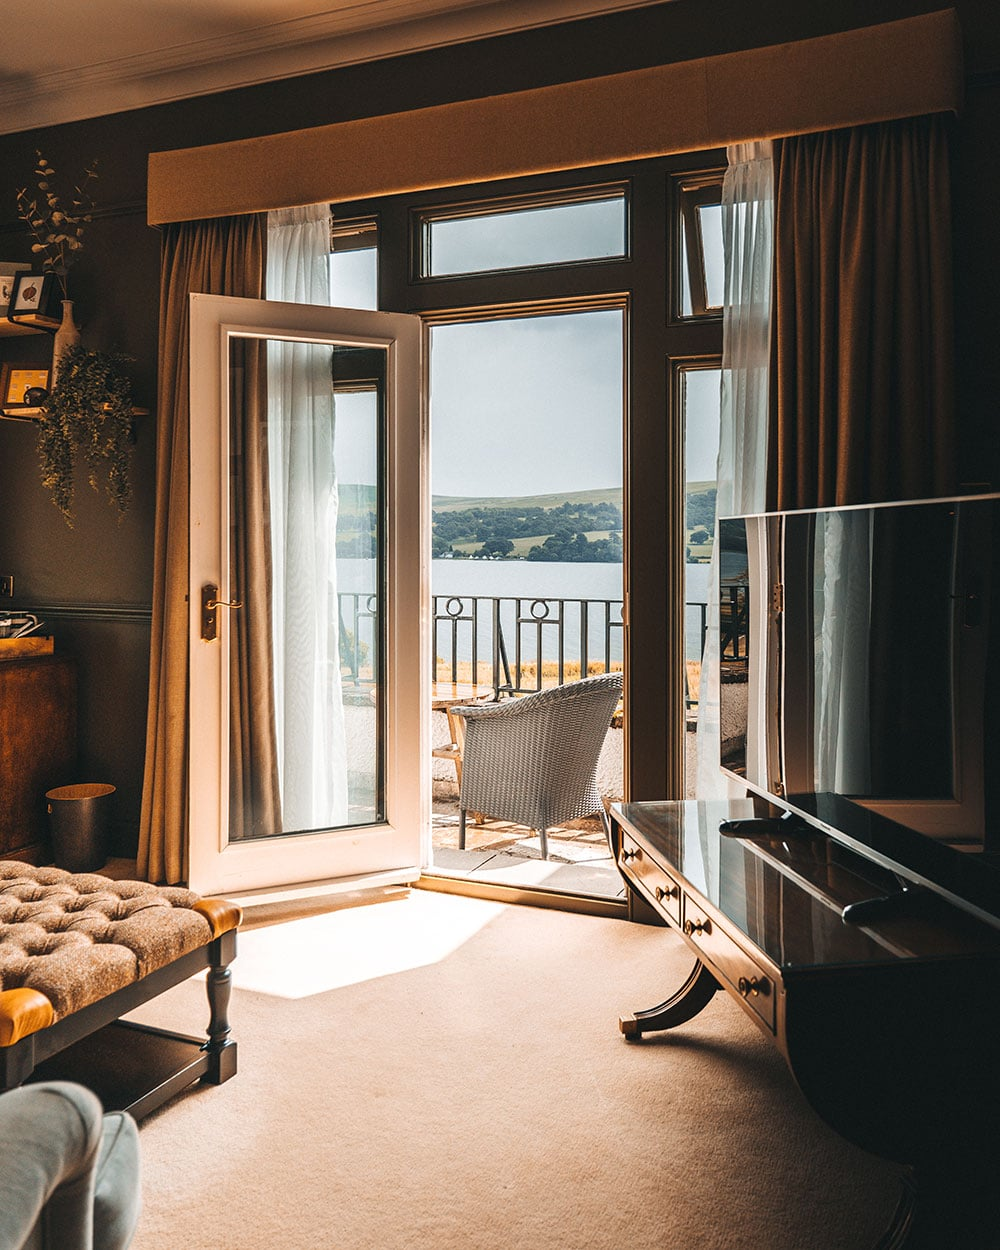 Hotel bedroom with views over the lake